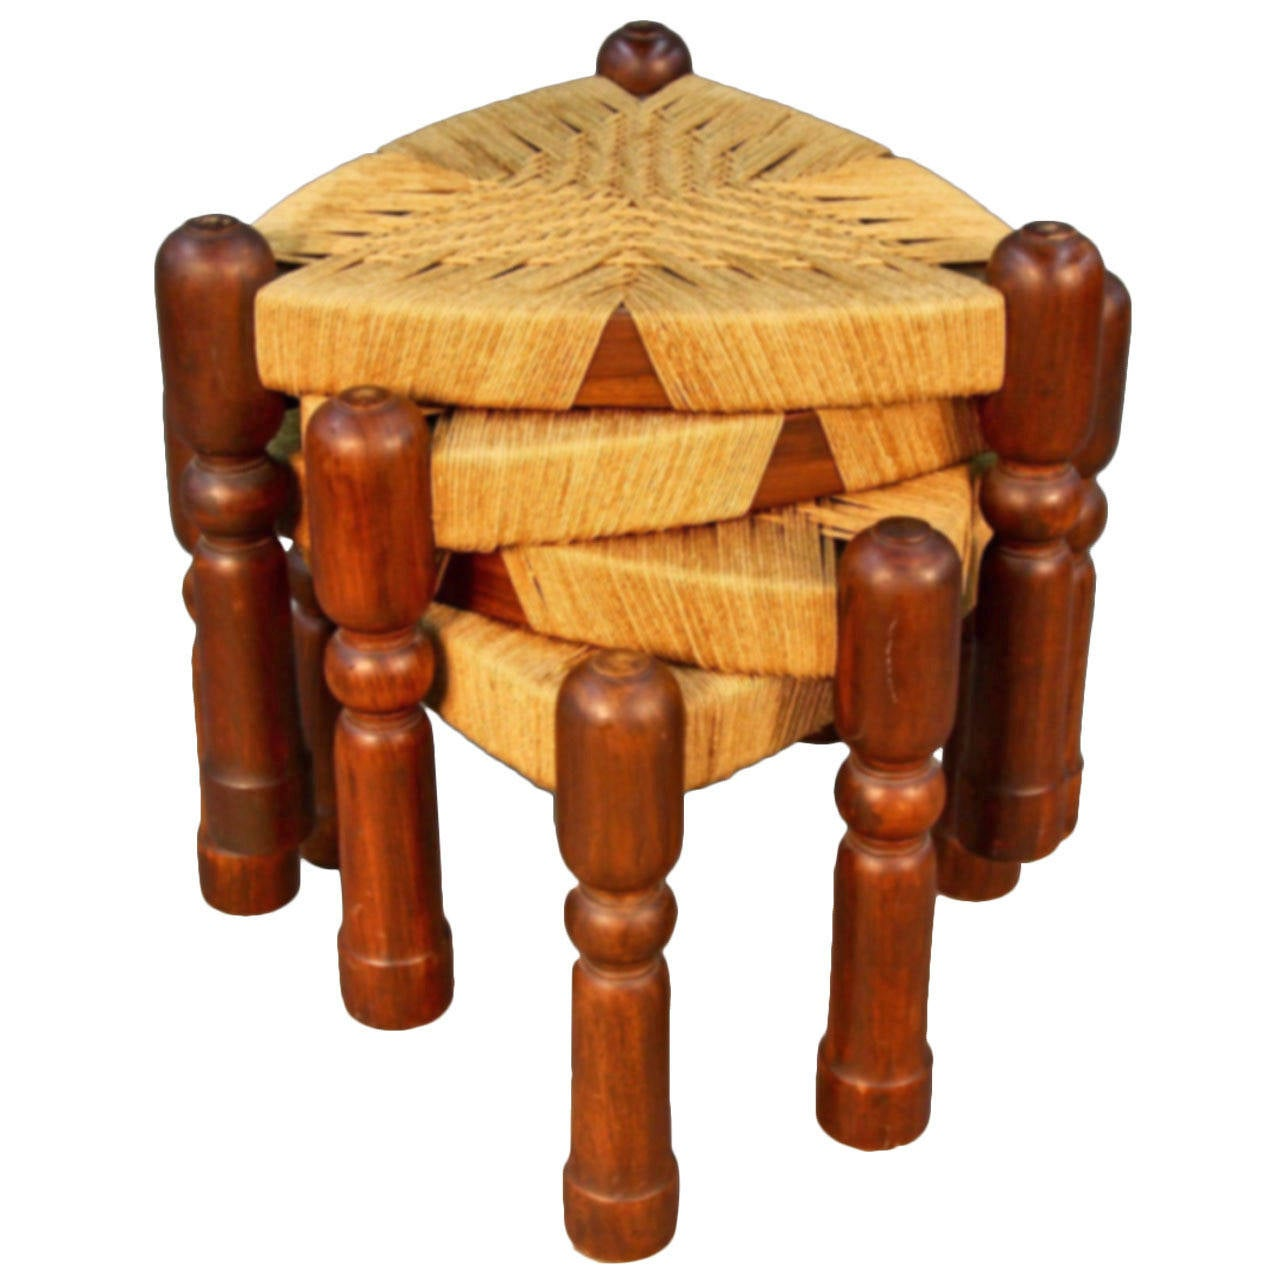 Stacked Stools/Tables